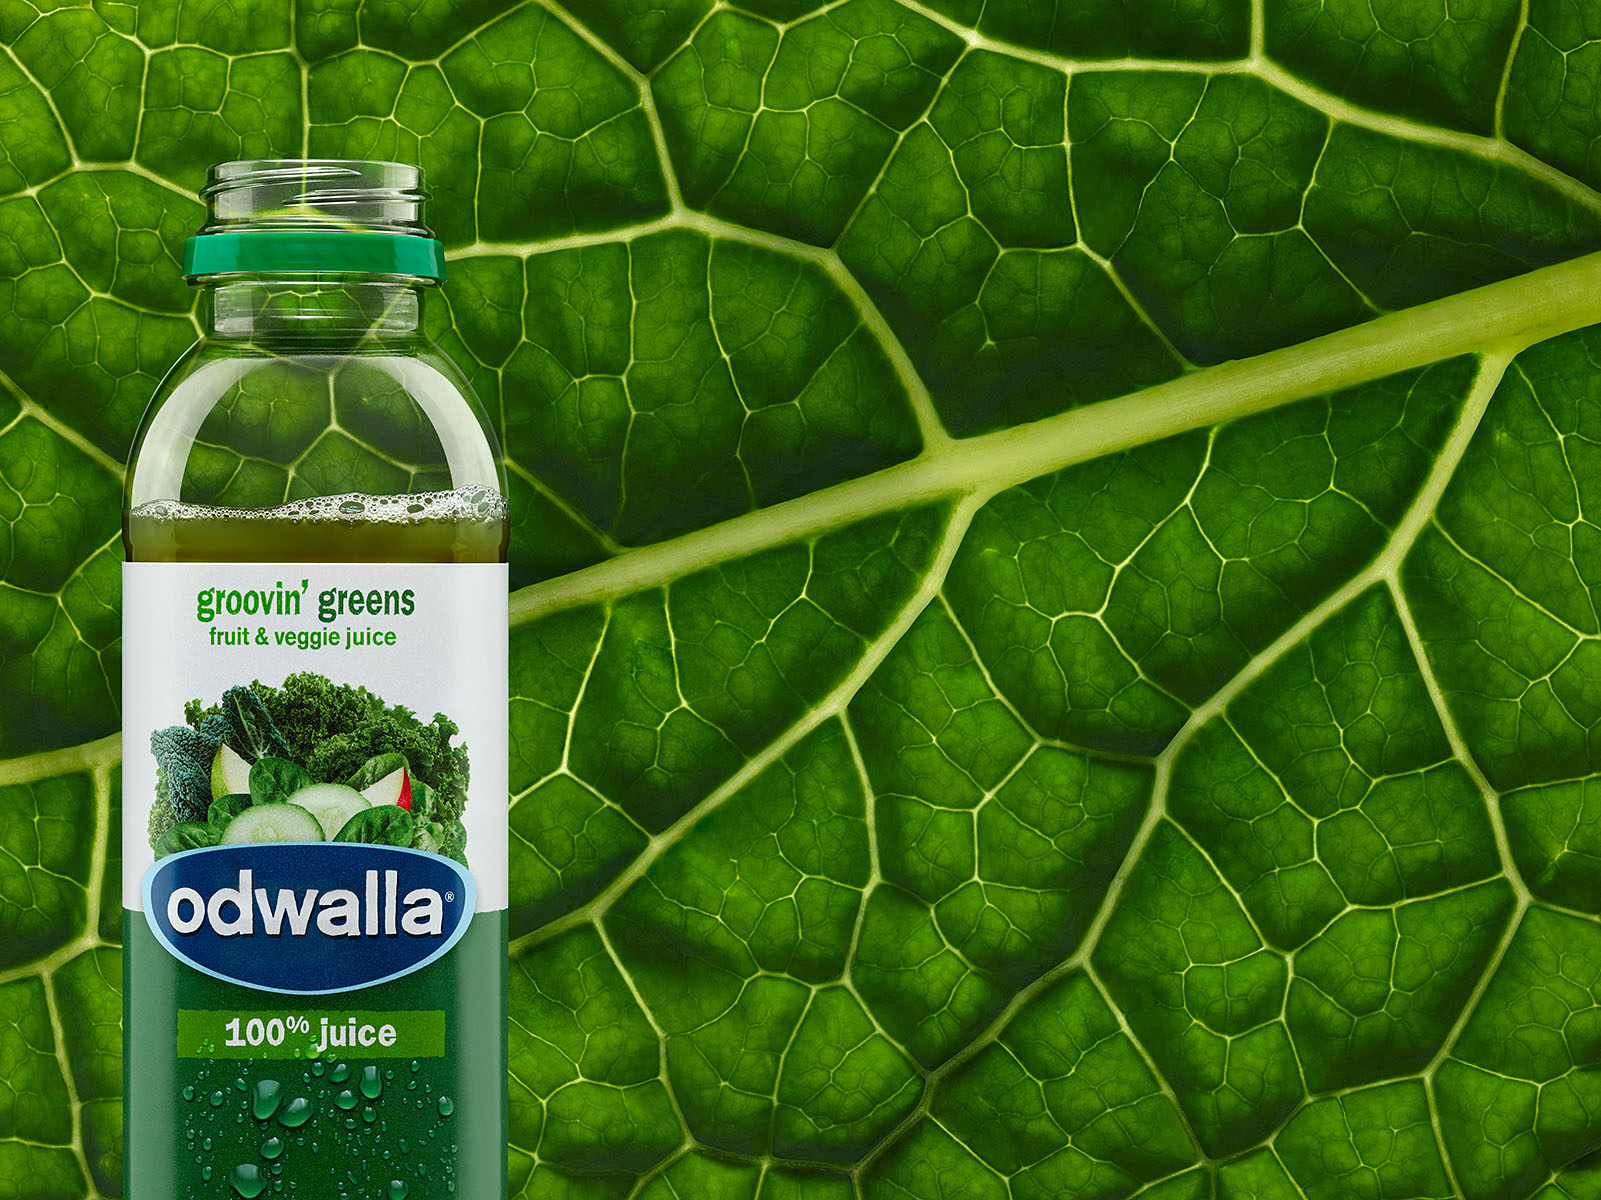 Odwalla_15oz_GroovinGreens_03_Droplets_Final-small